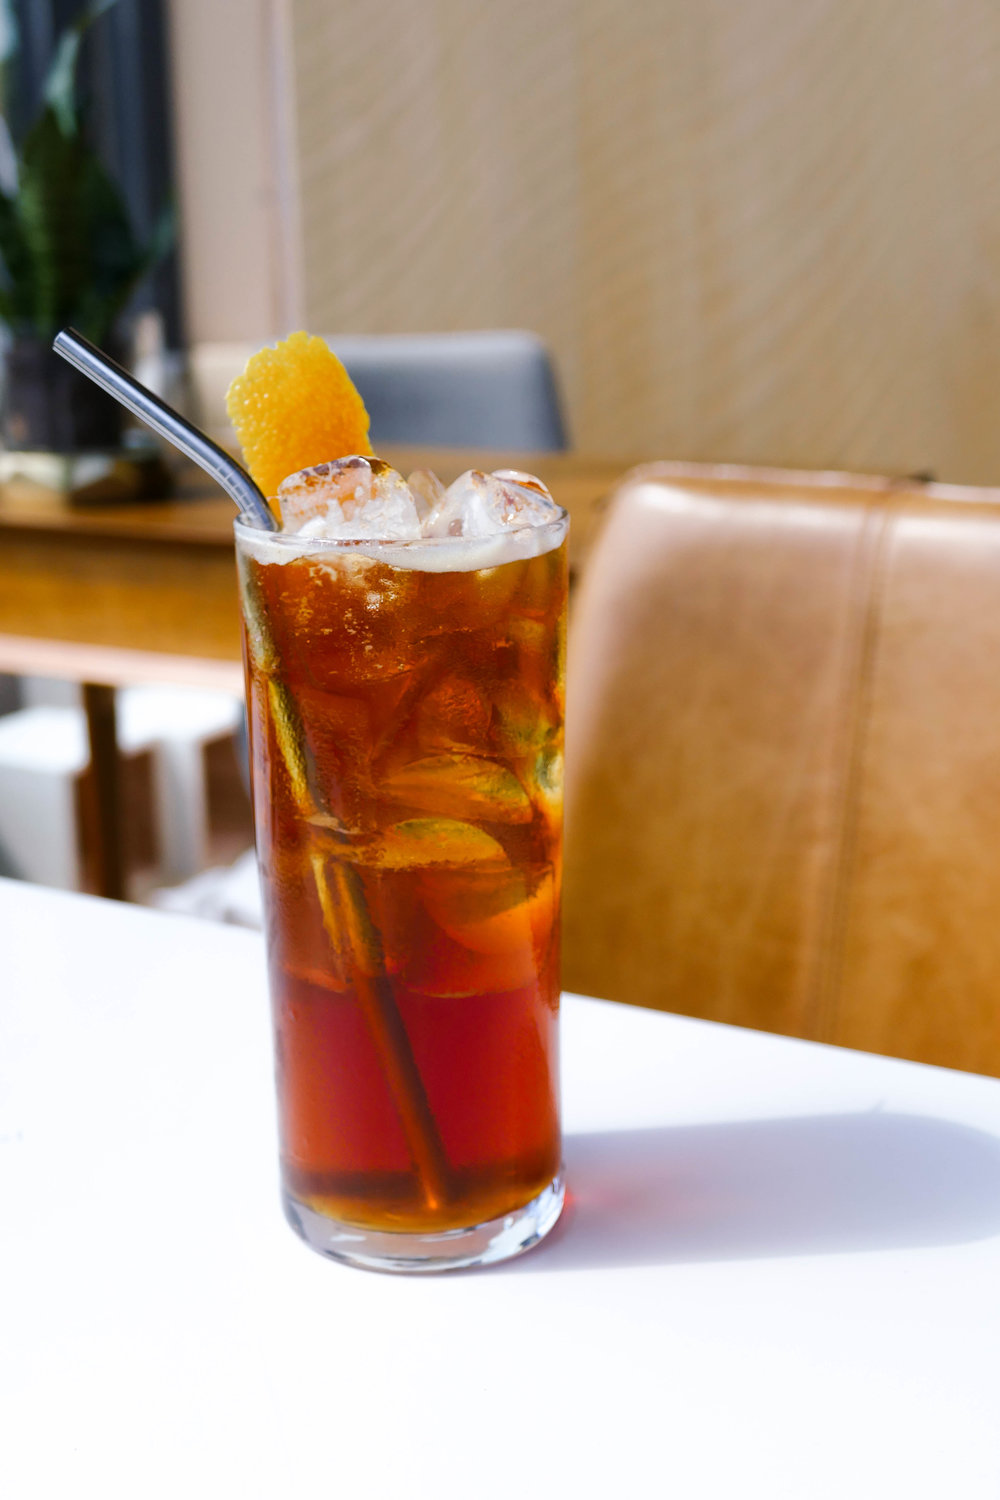 It was, true to its name, the best coffee soda I have ever tried. The coffee is fully up front, just sweet enough and balanced with a bite of citric acid.  - JIM MYERS, THE TENNESSEAN